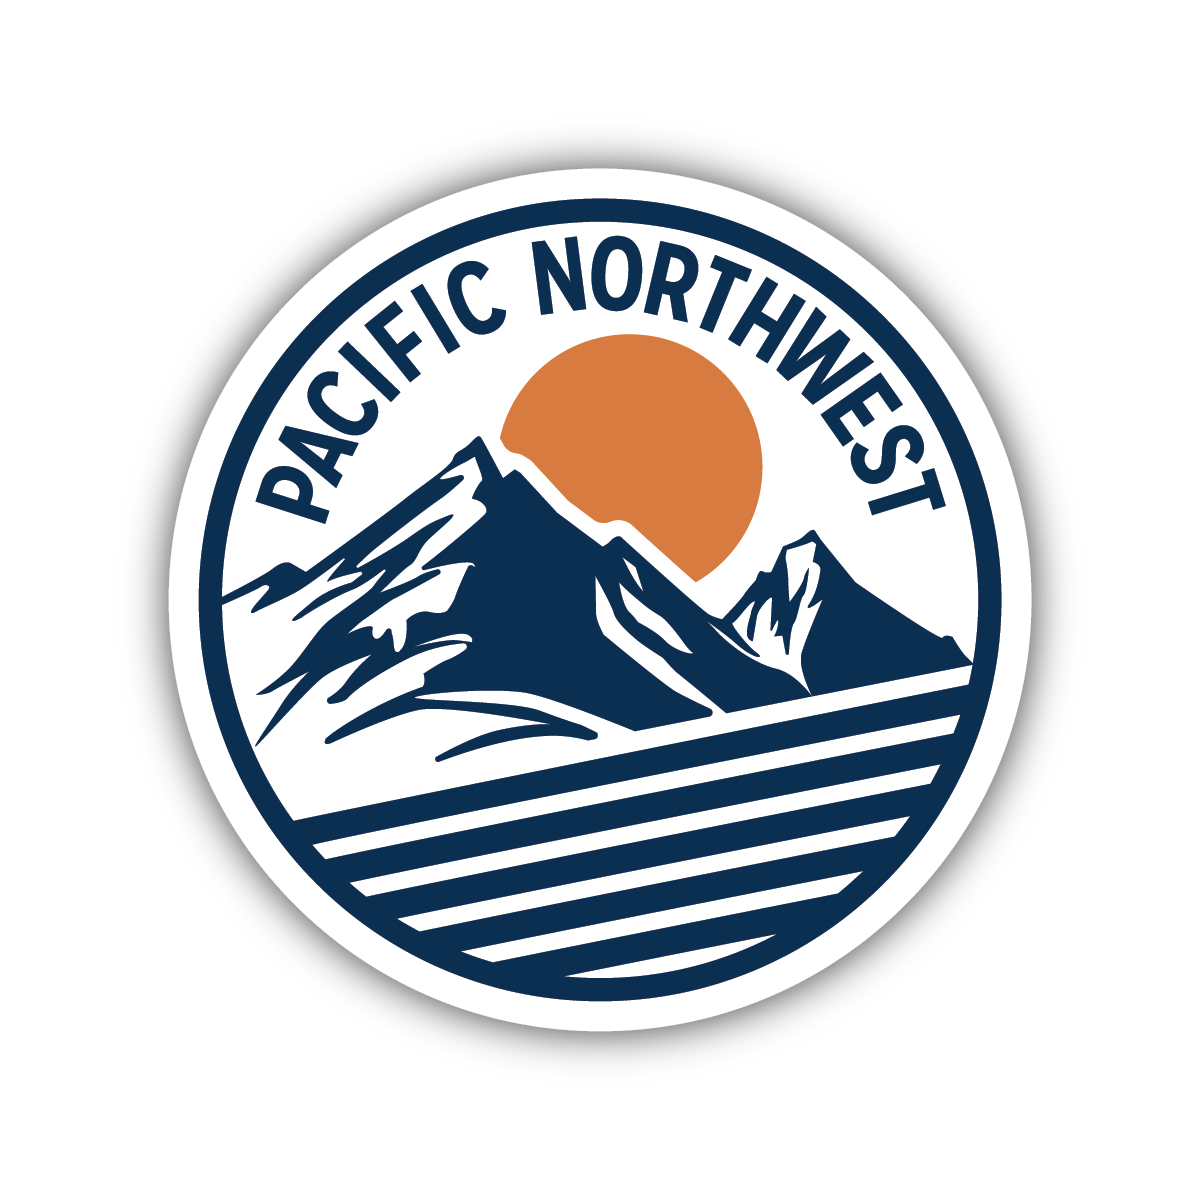 Pnw Mountain Circle Sticker Surf Stickers Outdoor Stickers Funny Laptop Stickers [ 1200 x 1200 Pixel ]